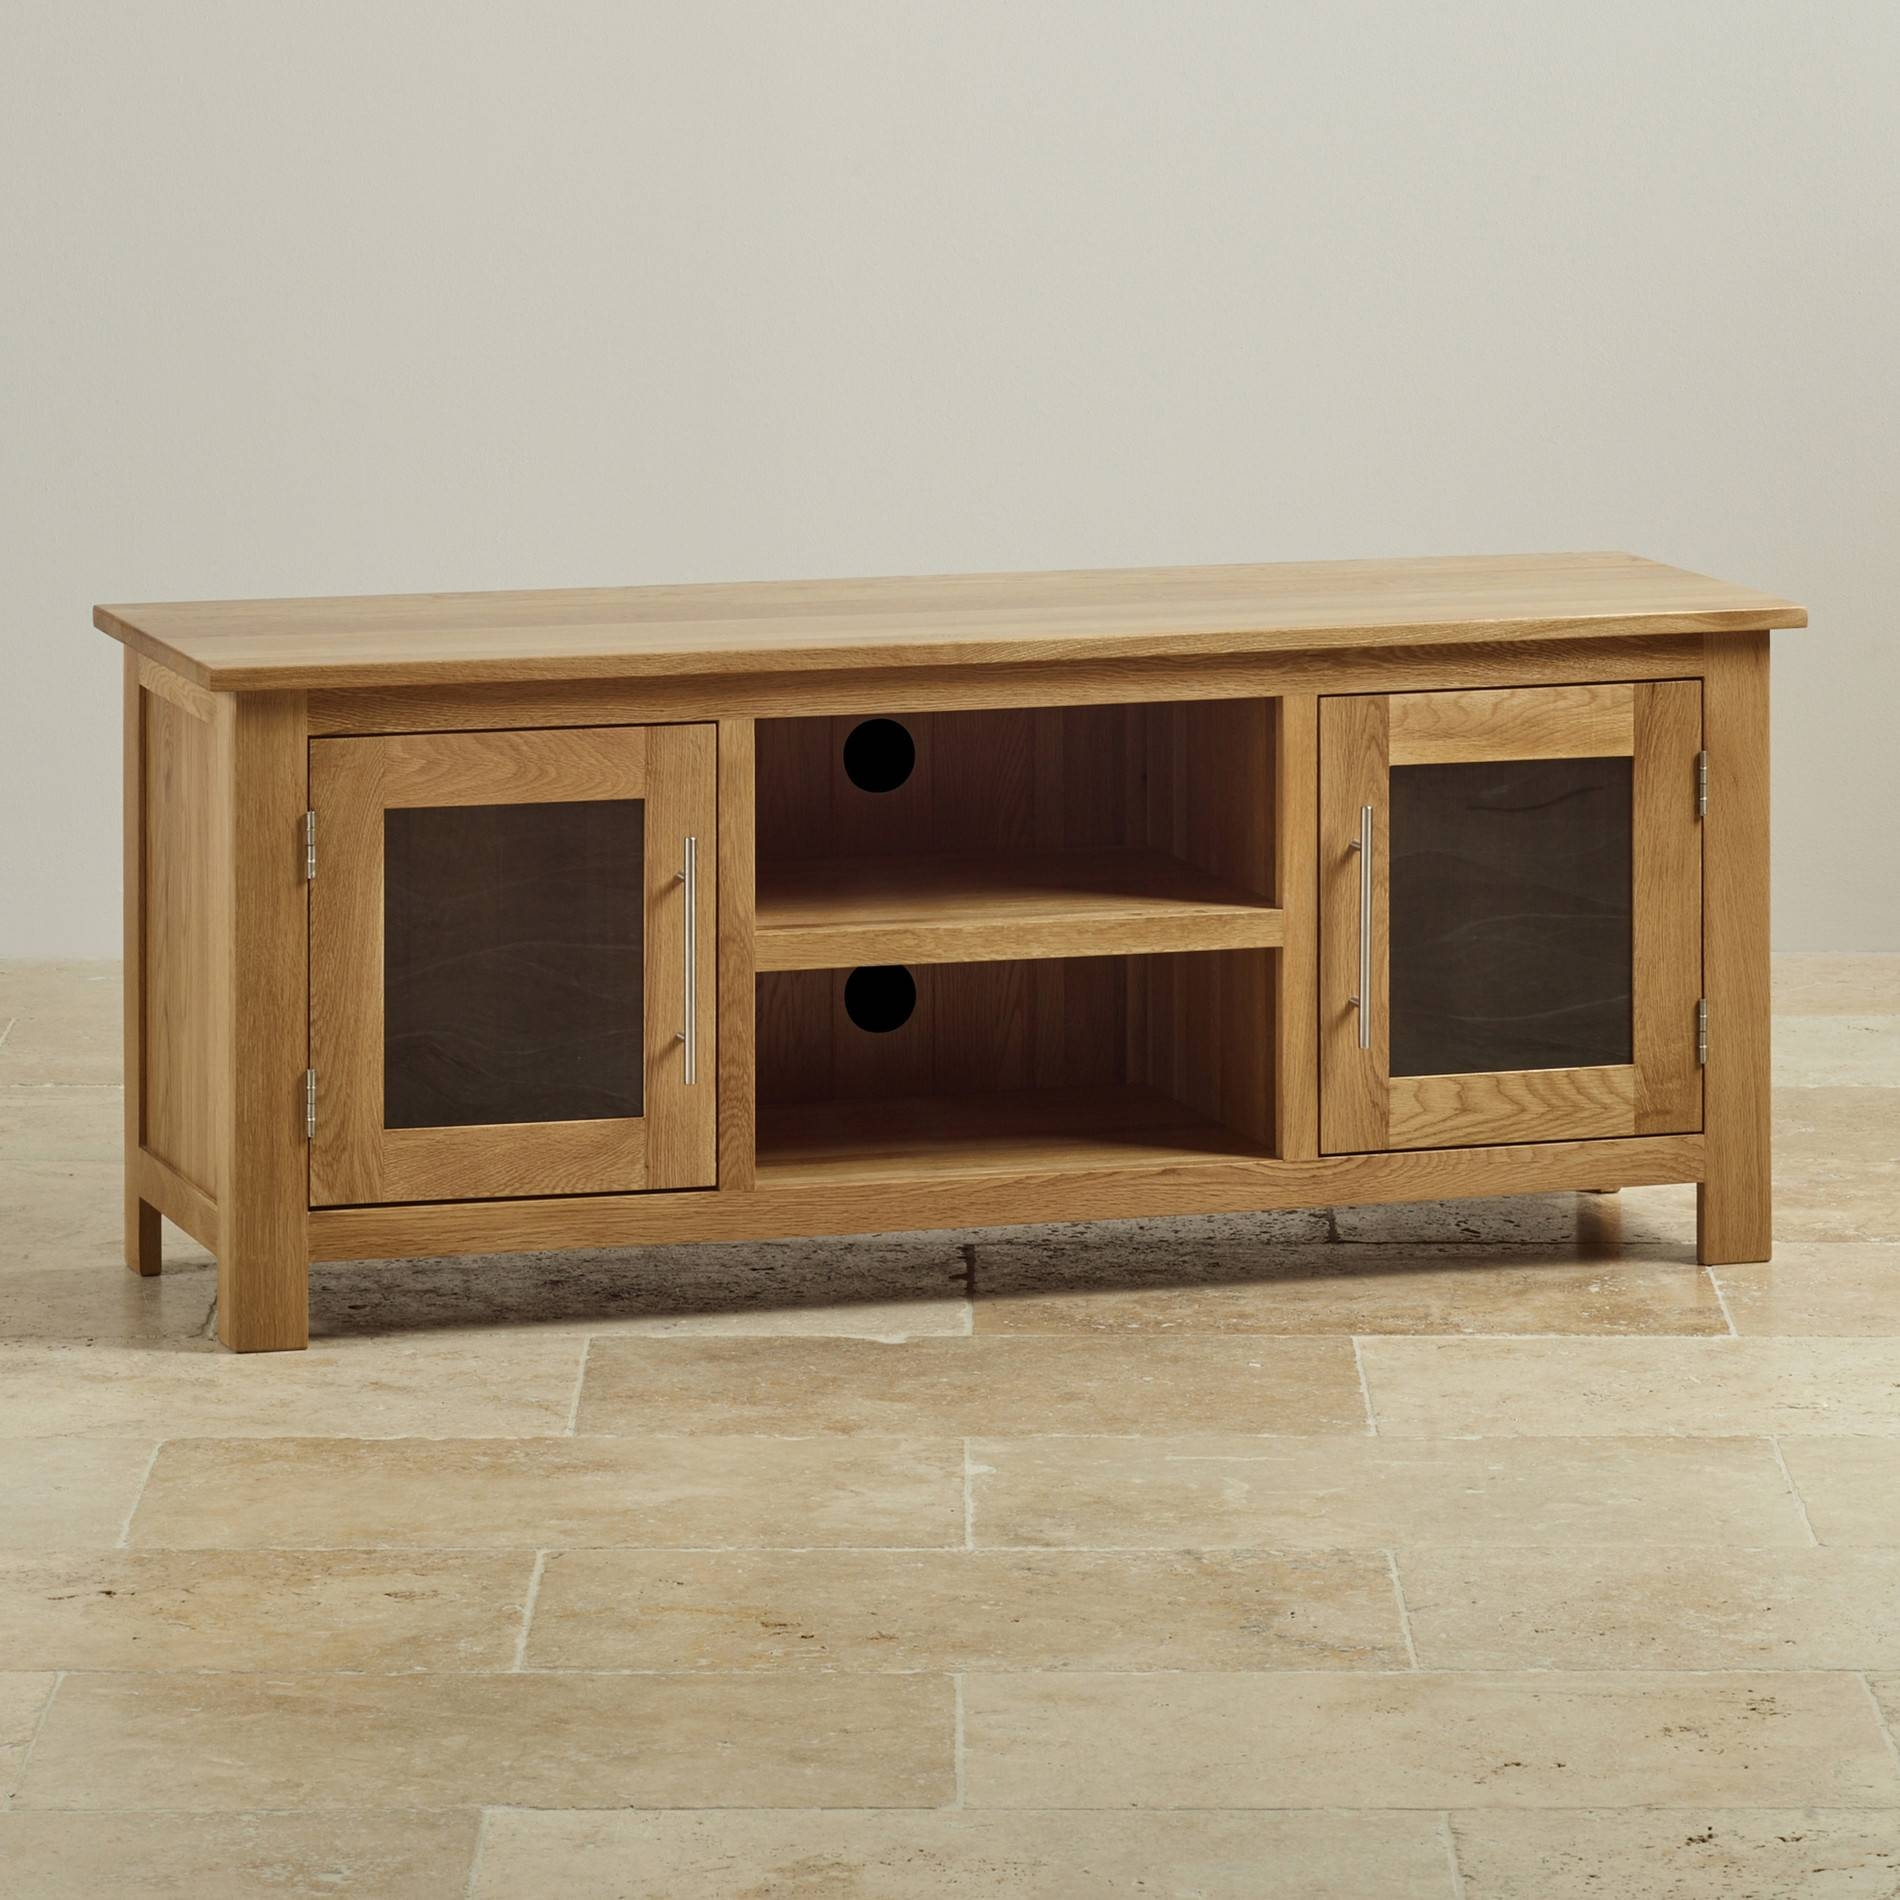 Tv Cabinets & Units | 100% Solid Oak | Oak Furniture Land With Regard To Maple Tv Cabinets (View 4 of 15)